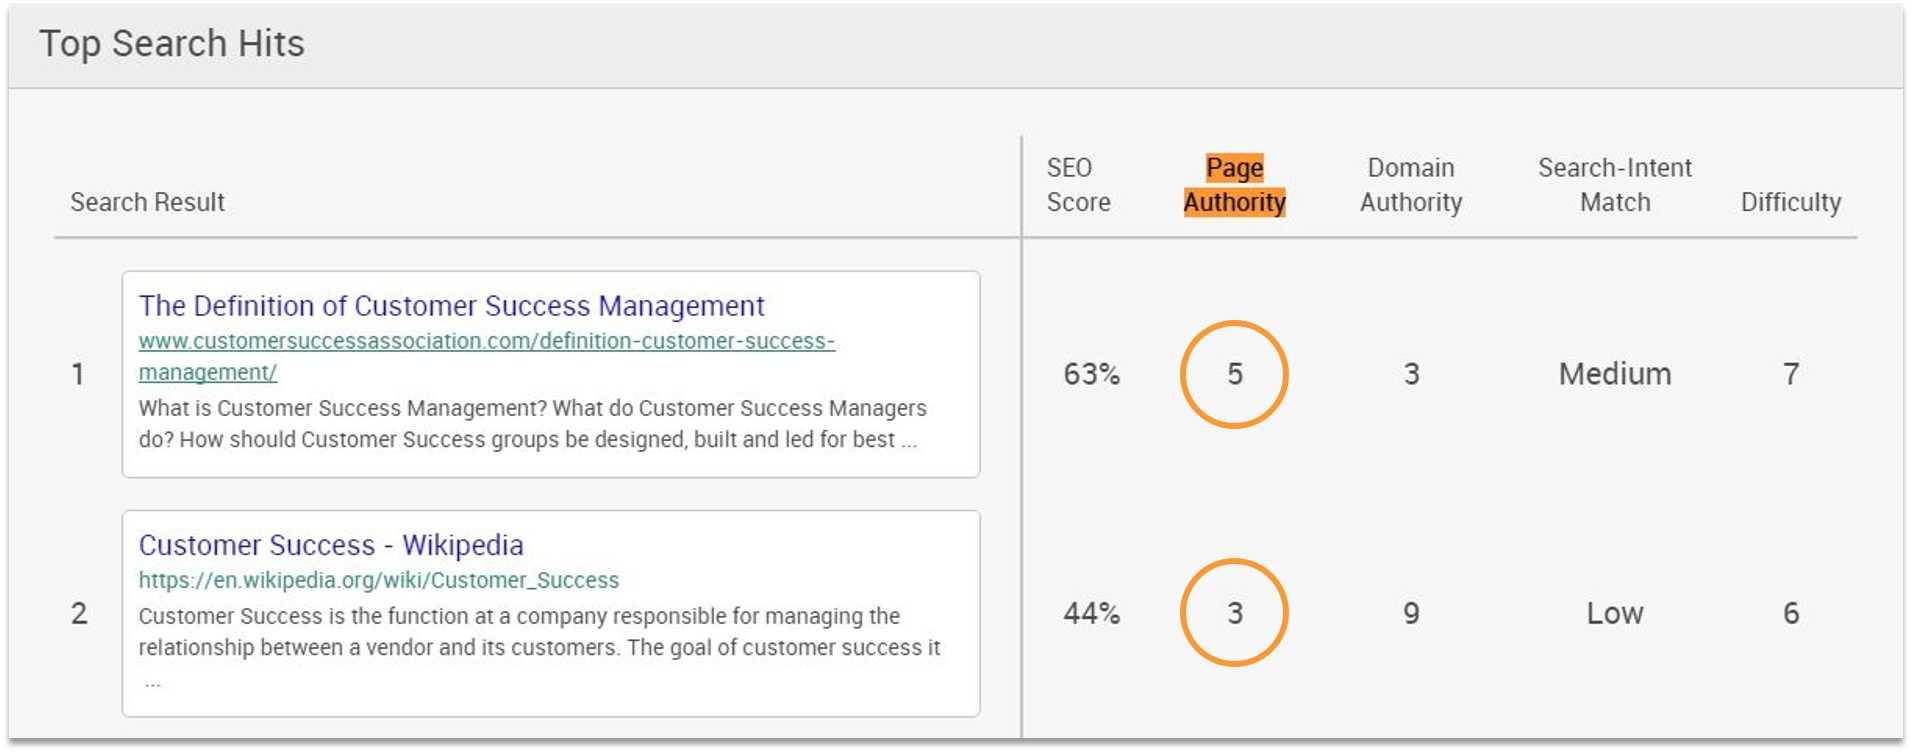 free keyword analysis tool Page Authority Breakdown